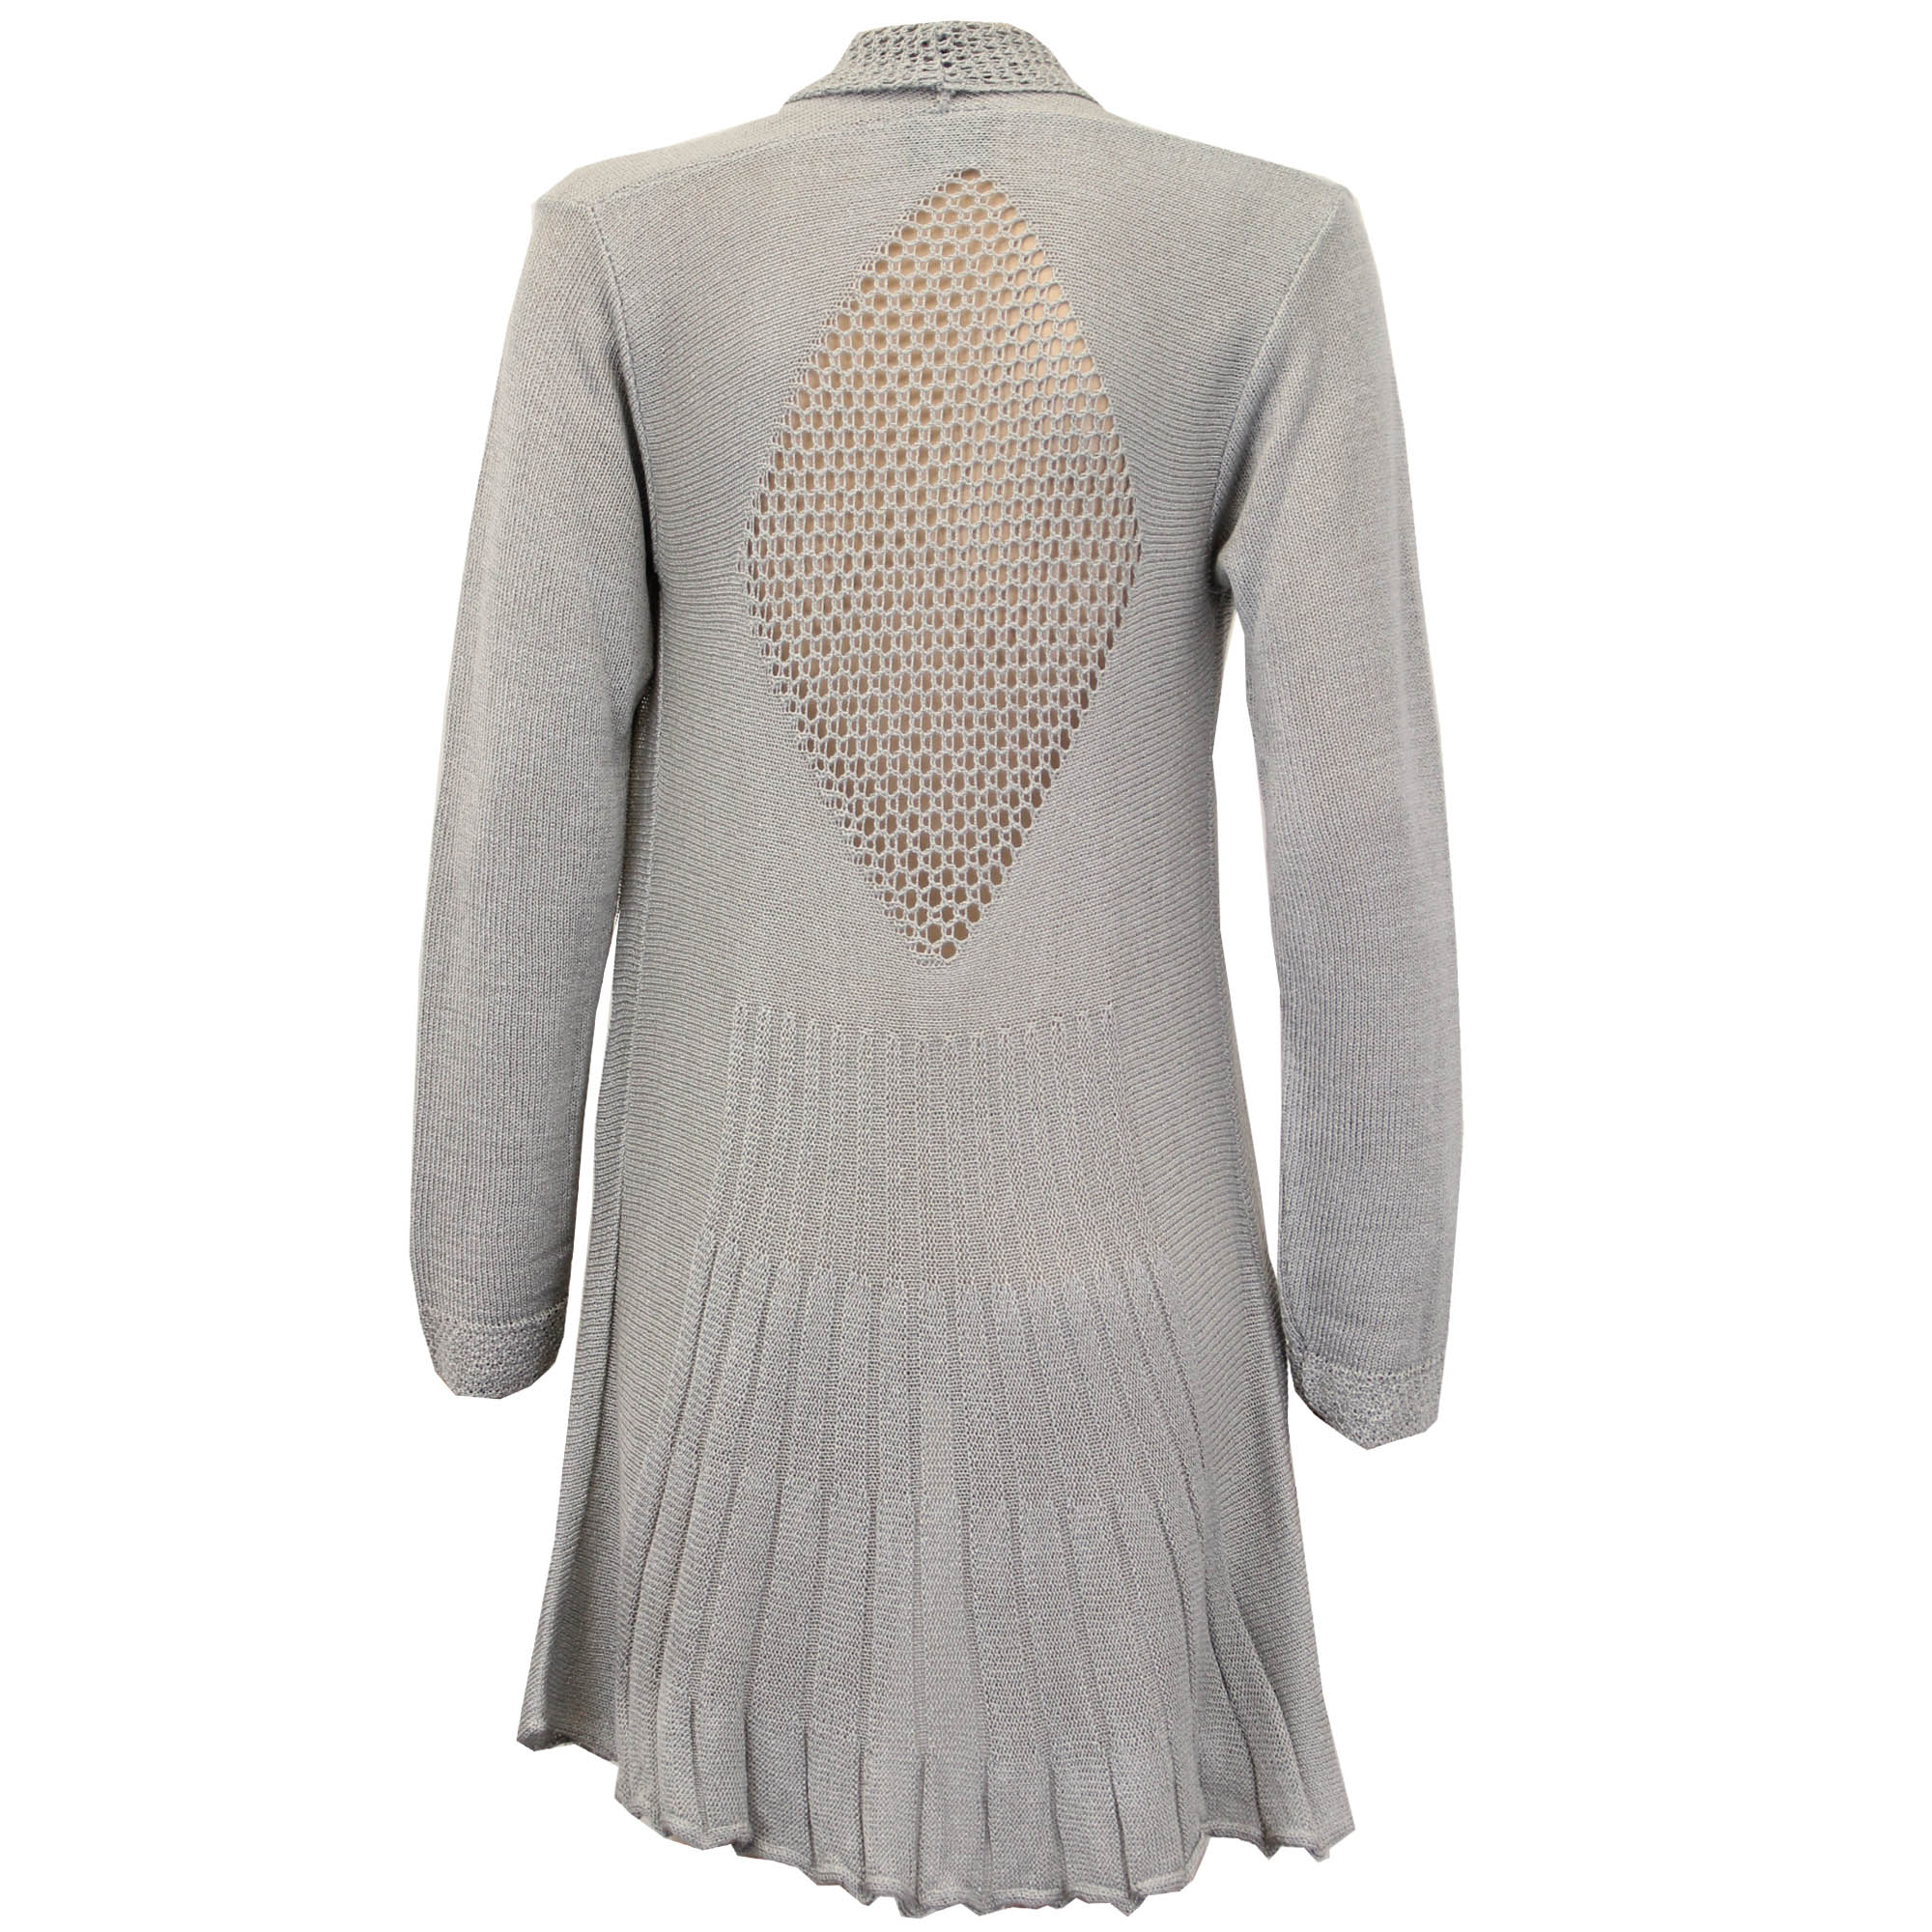 Knitting Cardigan For Ladies : Ladies womens knitted crochet cardigans